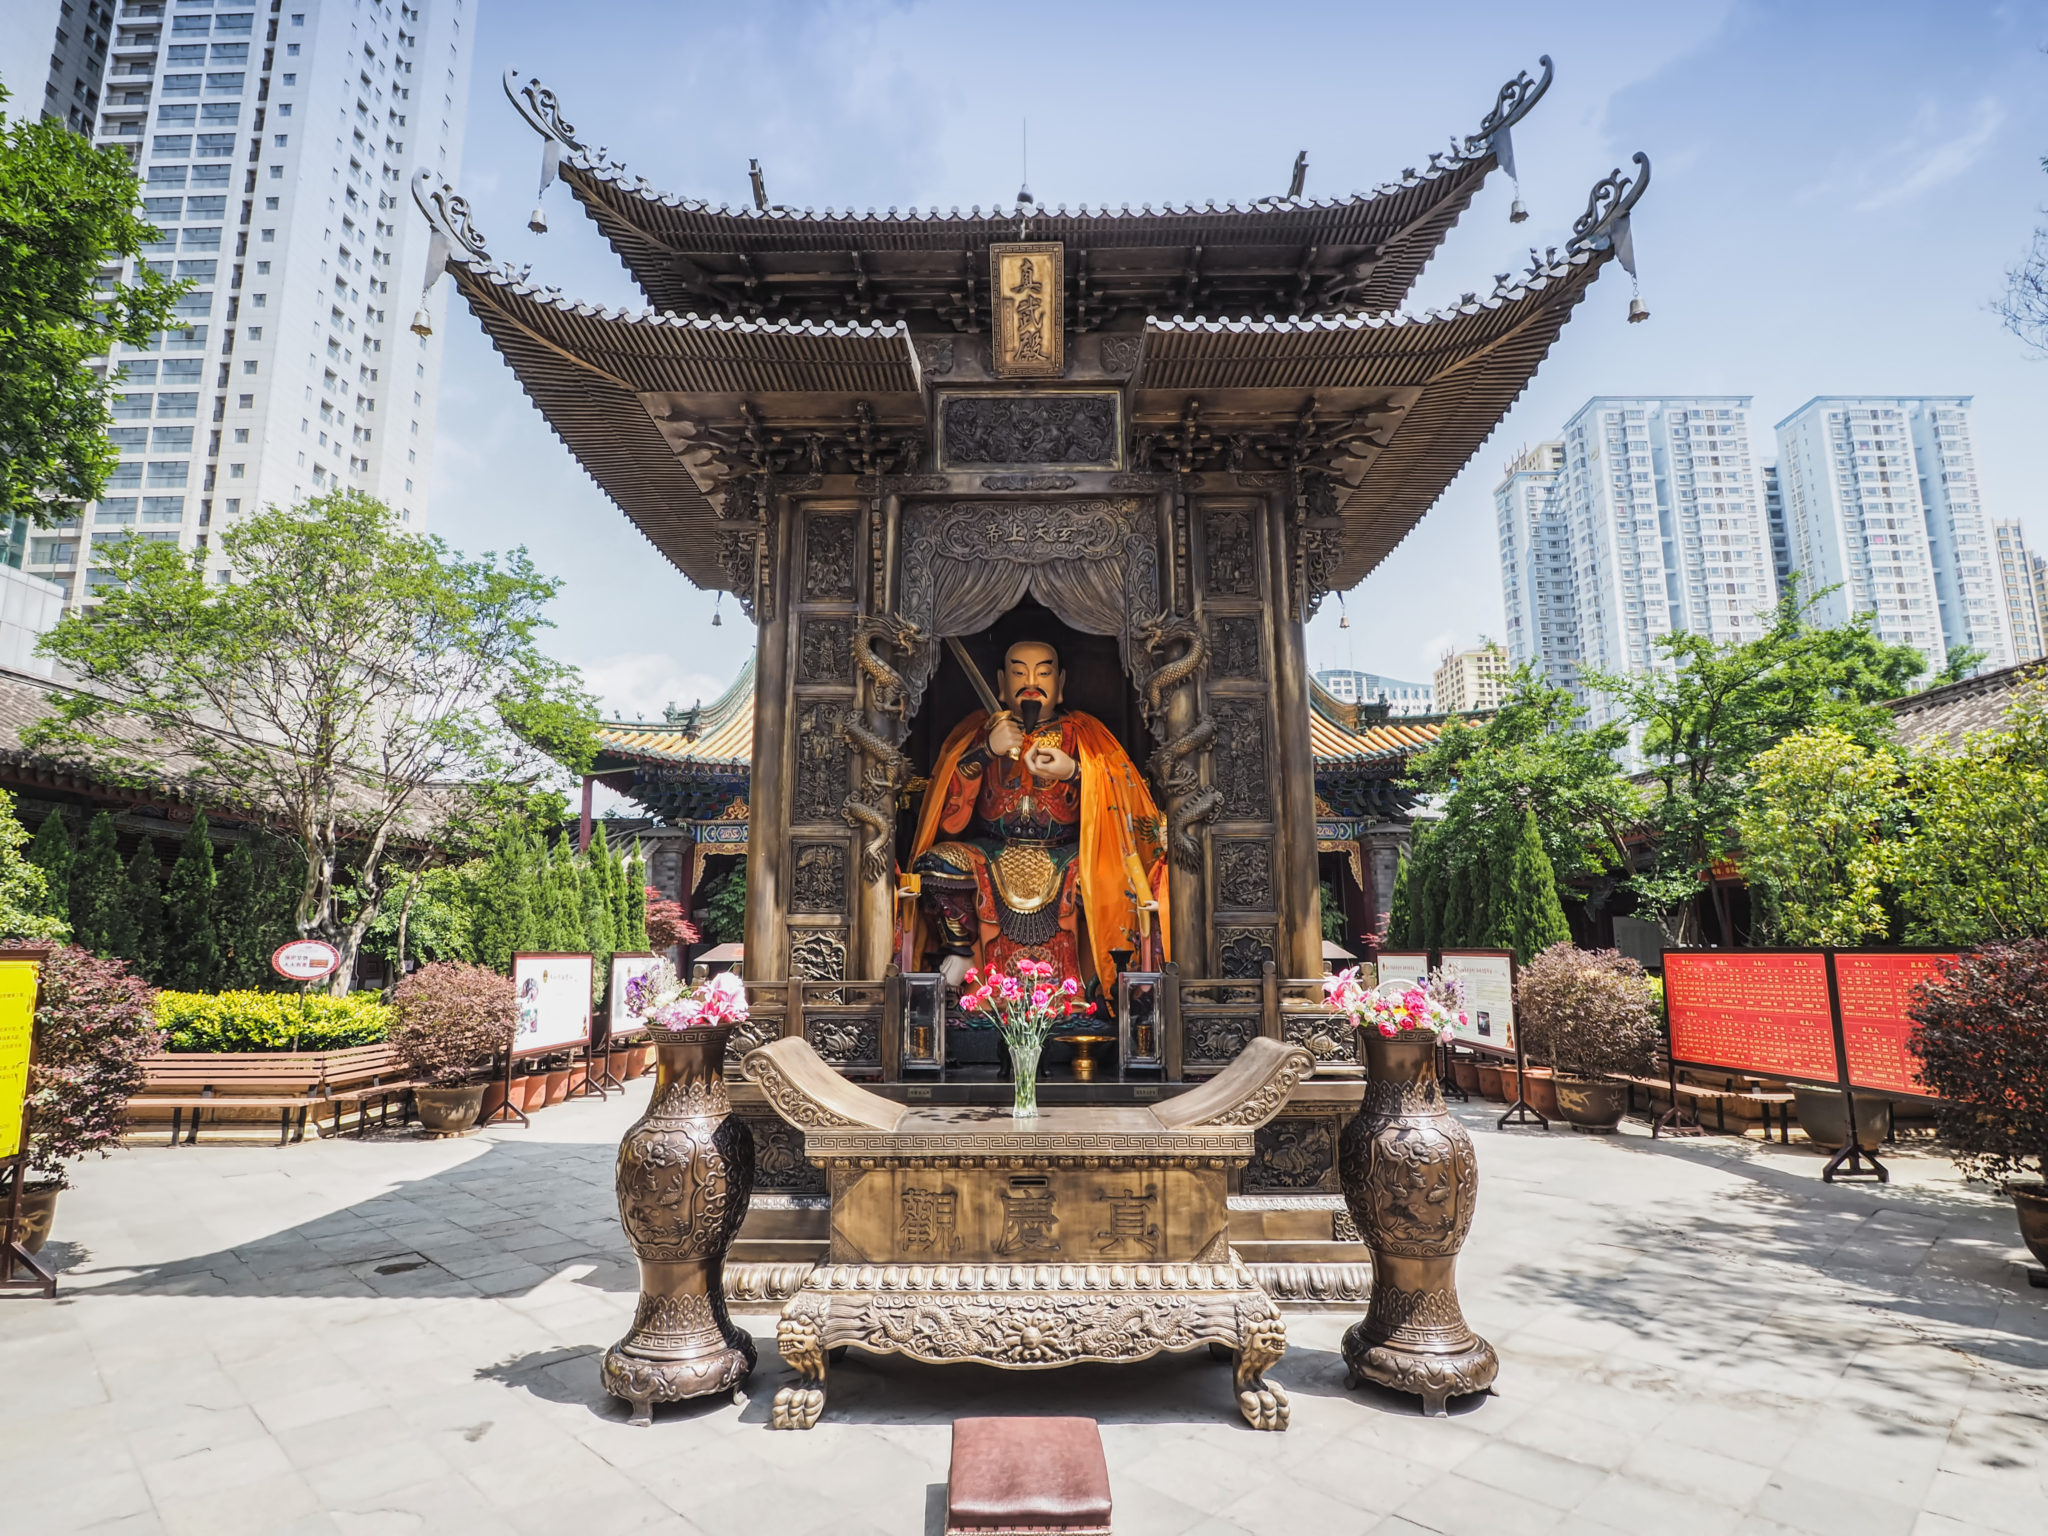 Kunming,/,China,-,May,20,,2018:,The,Monument,,Statue,